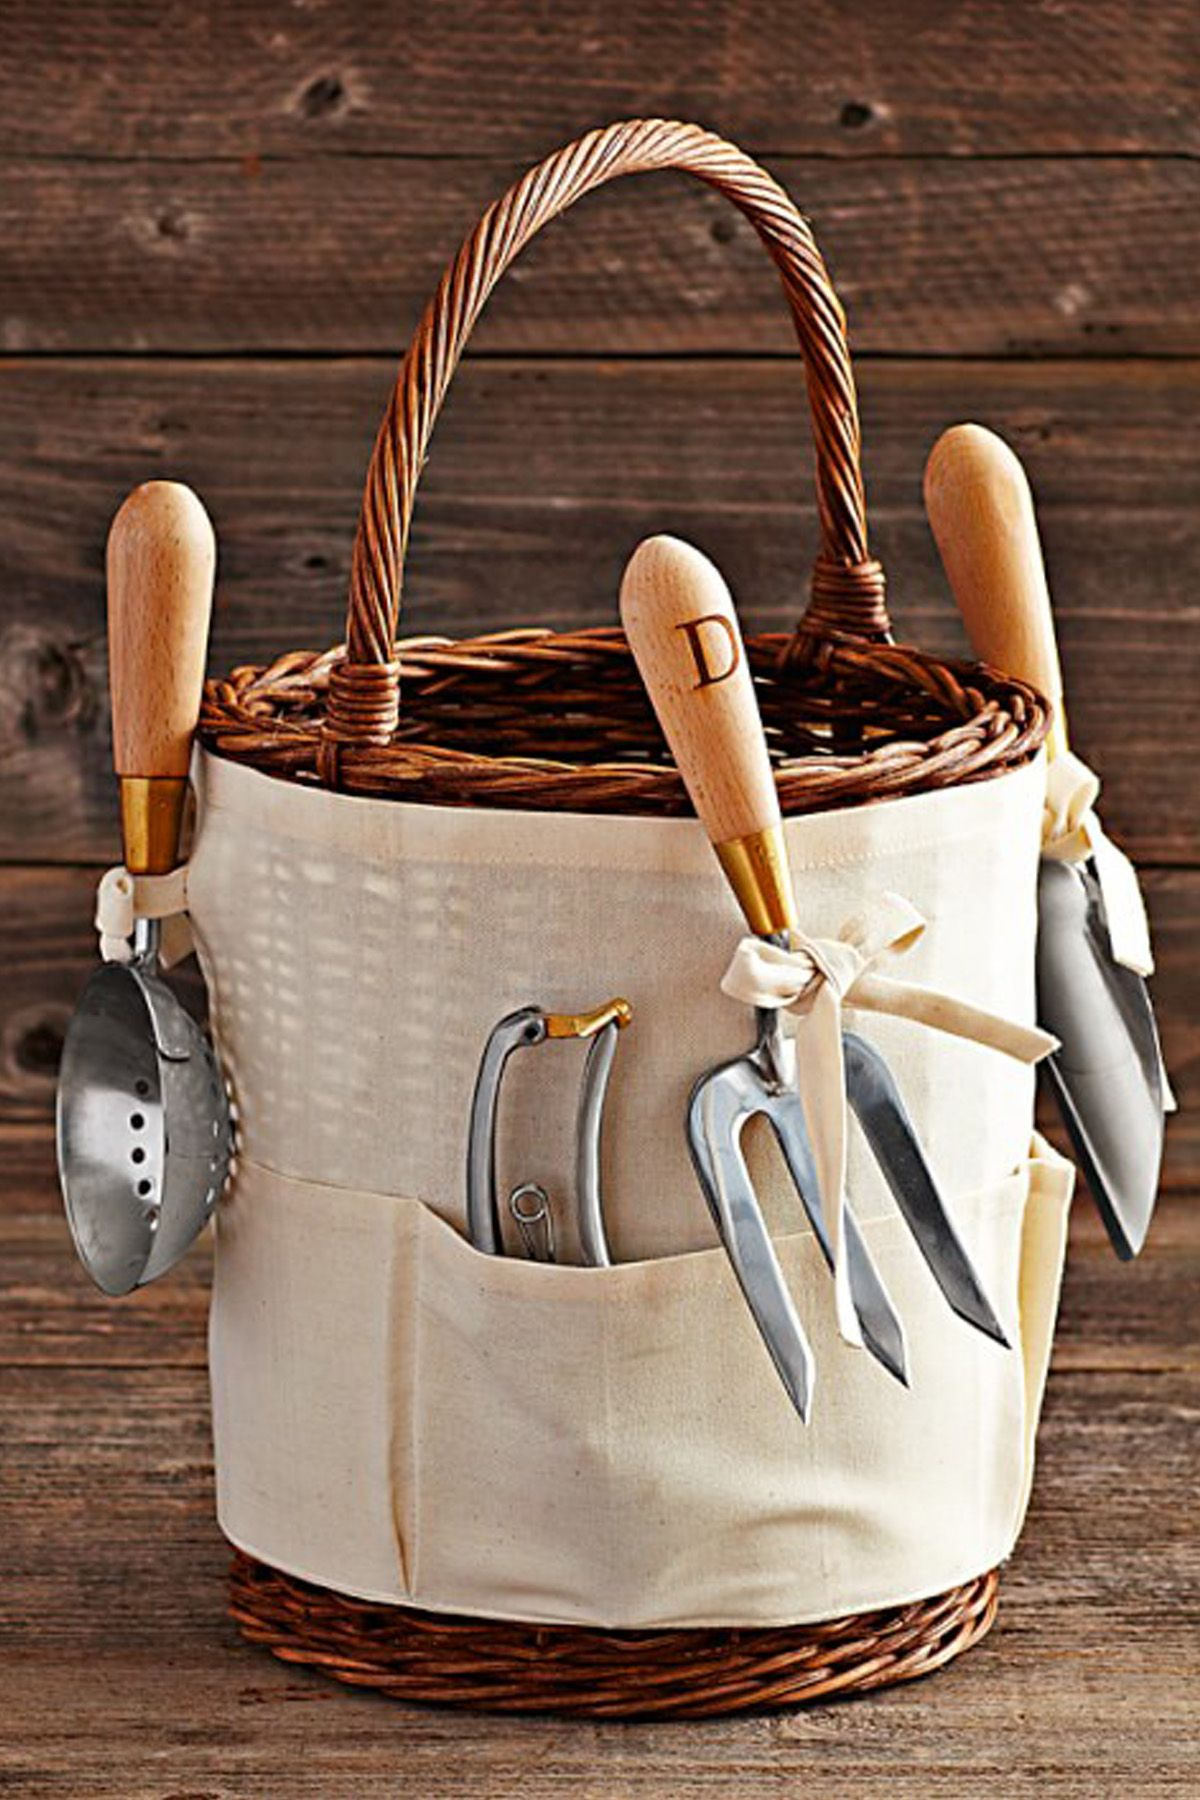 13 Best Gardening Gifts for Mom 2018 - Unique Gift Ideas for Gardeners